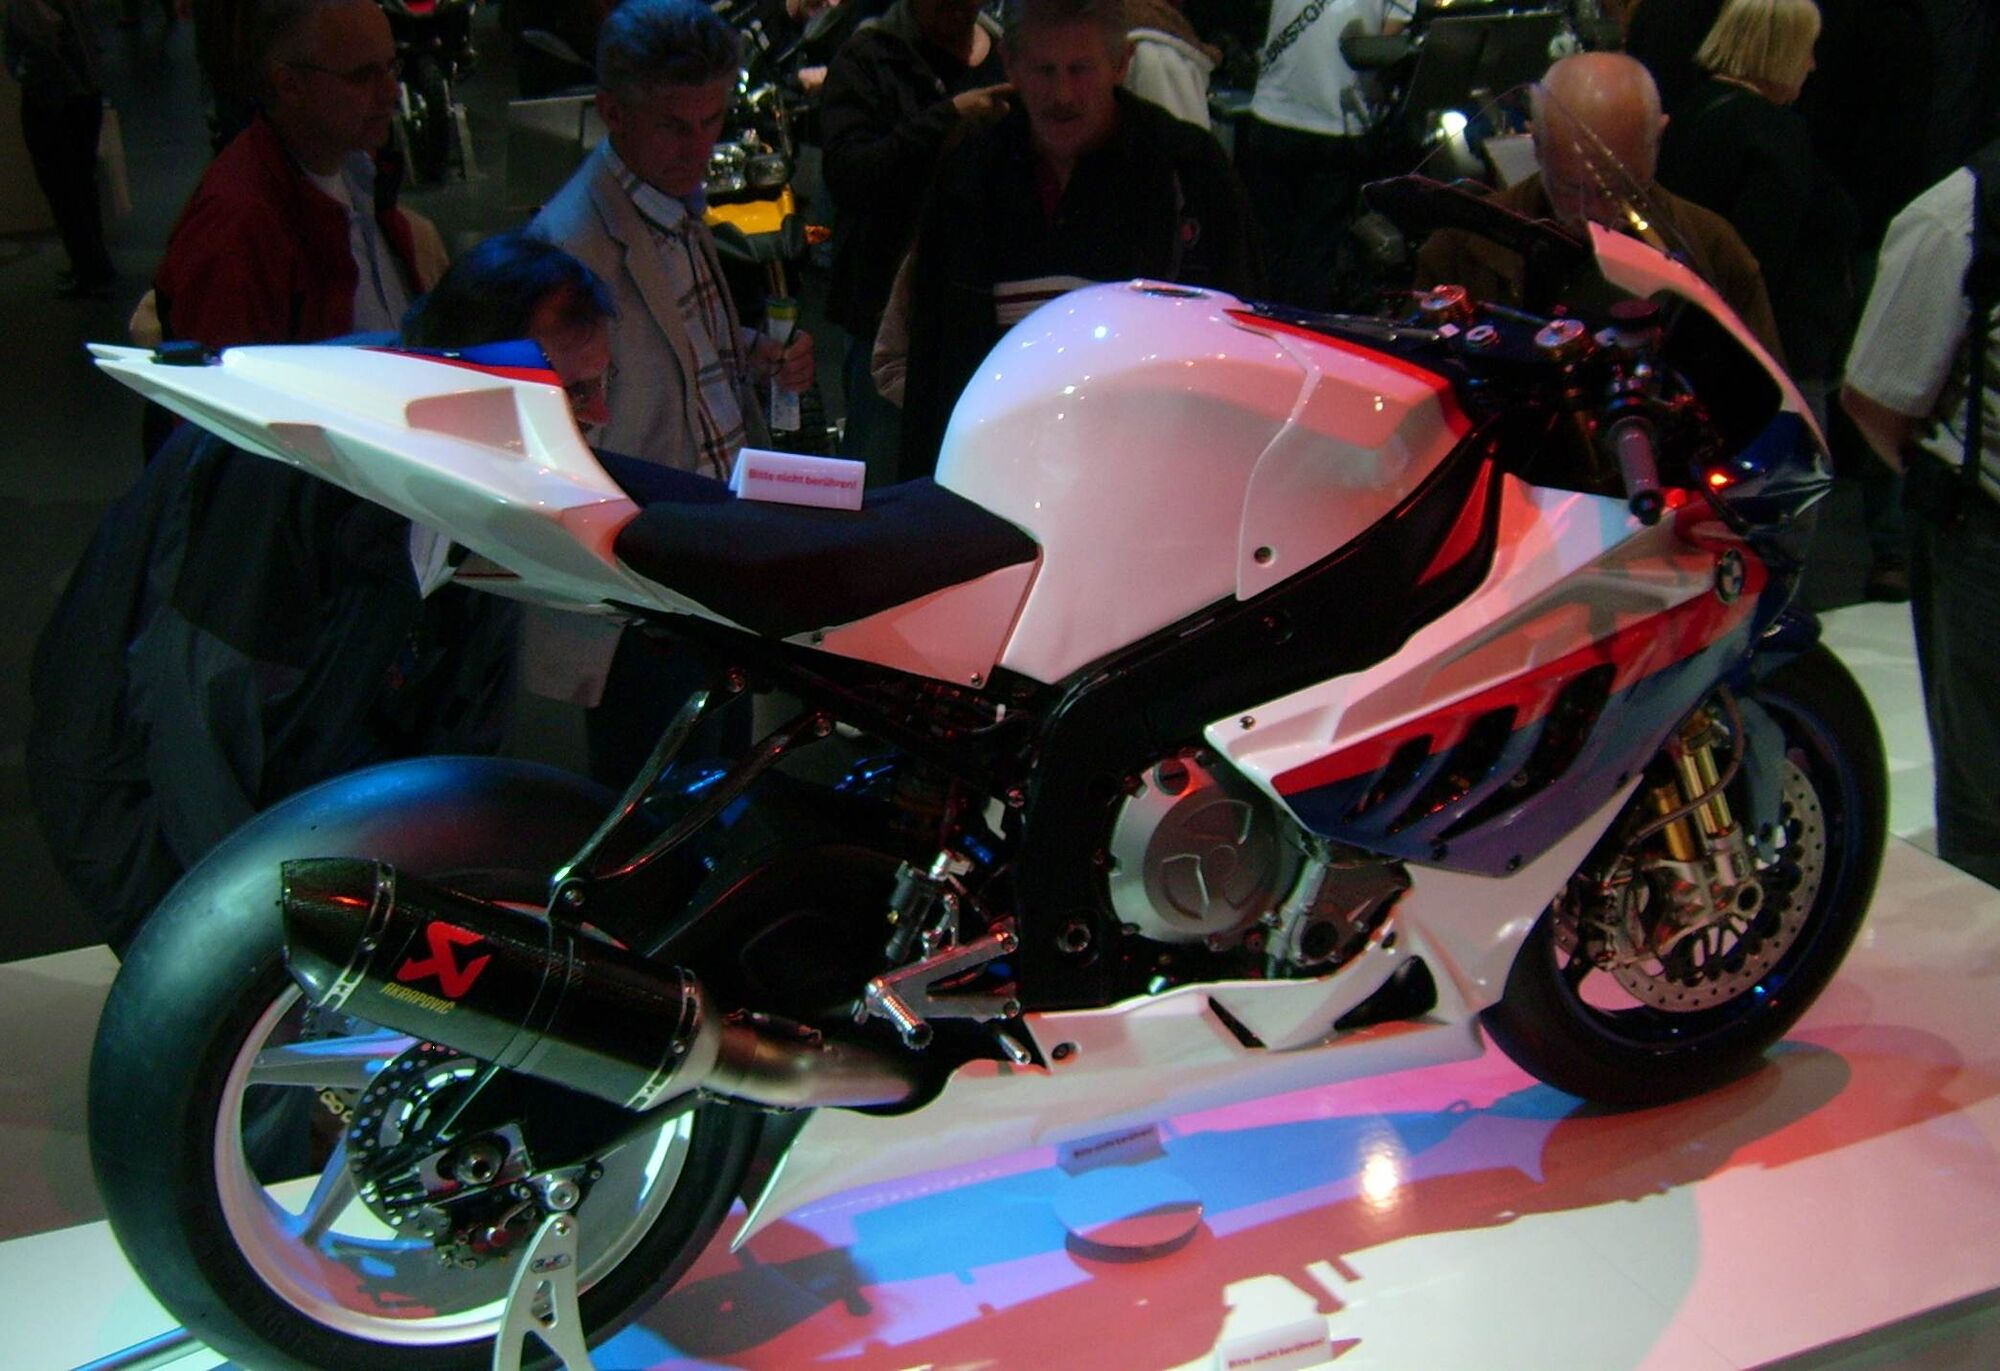 File:BMW S 1000 RR, right view.jpg - Wikimedia Commons